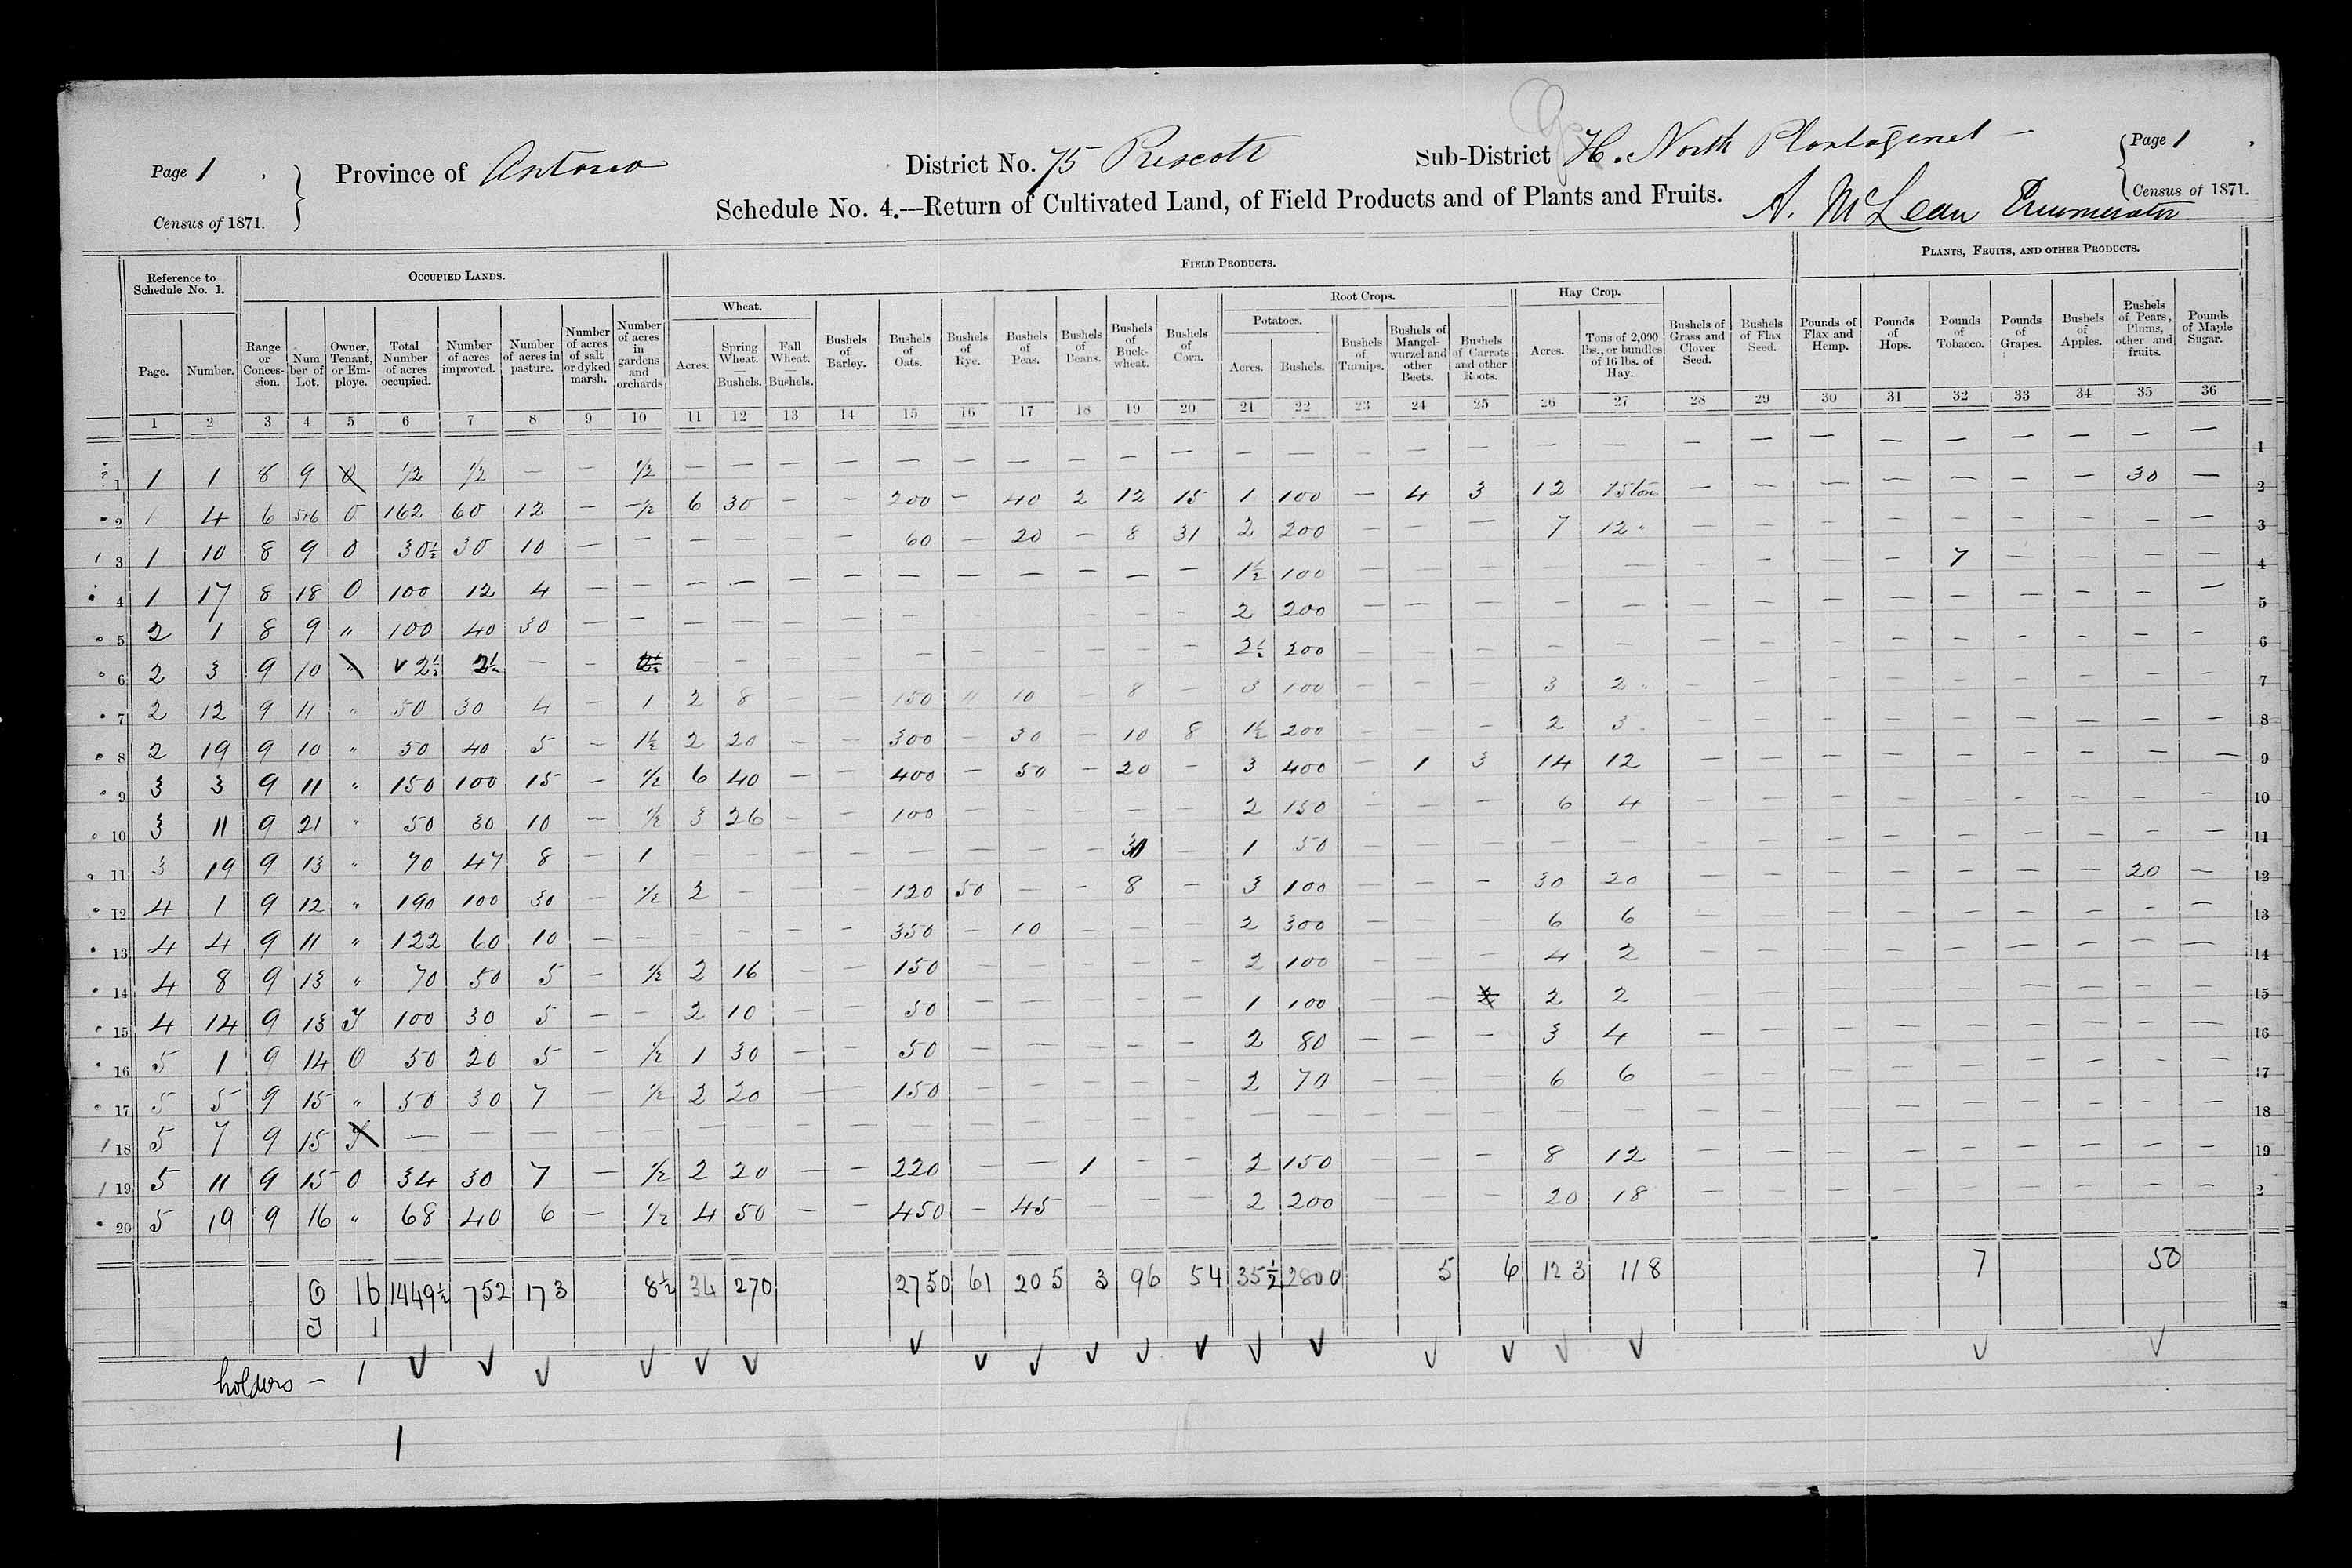 Title: Census of Canada, 1871 - Mikan Number: 142105 - Microform: c-10011